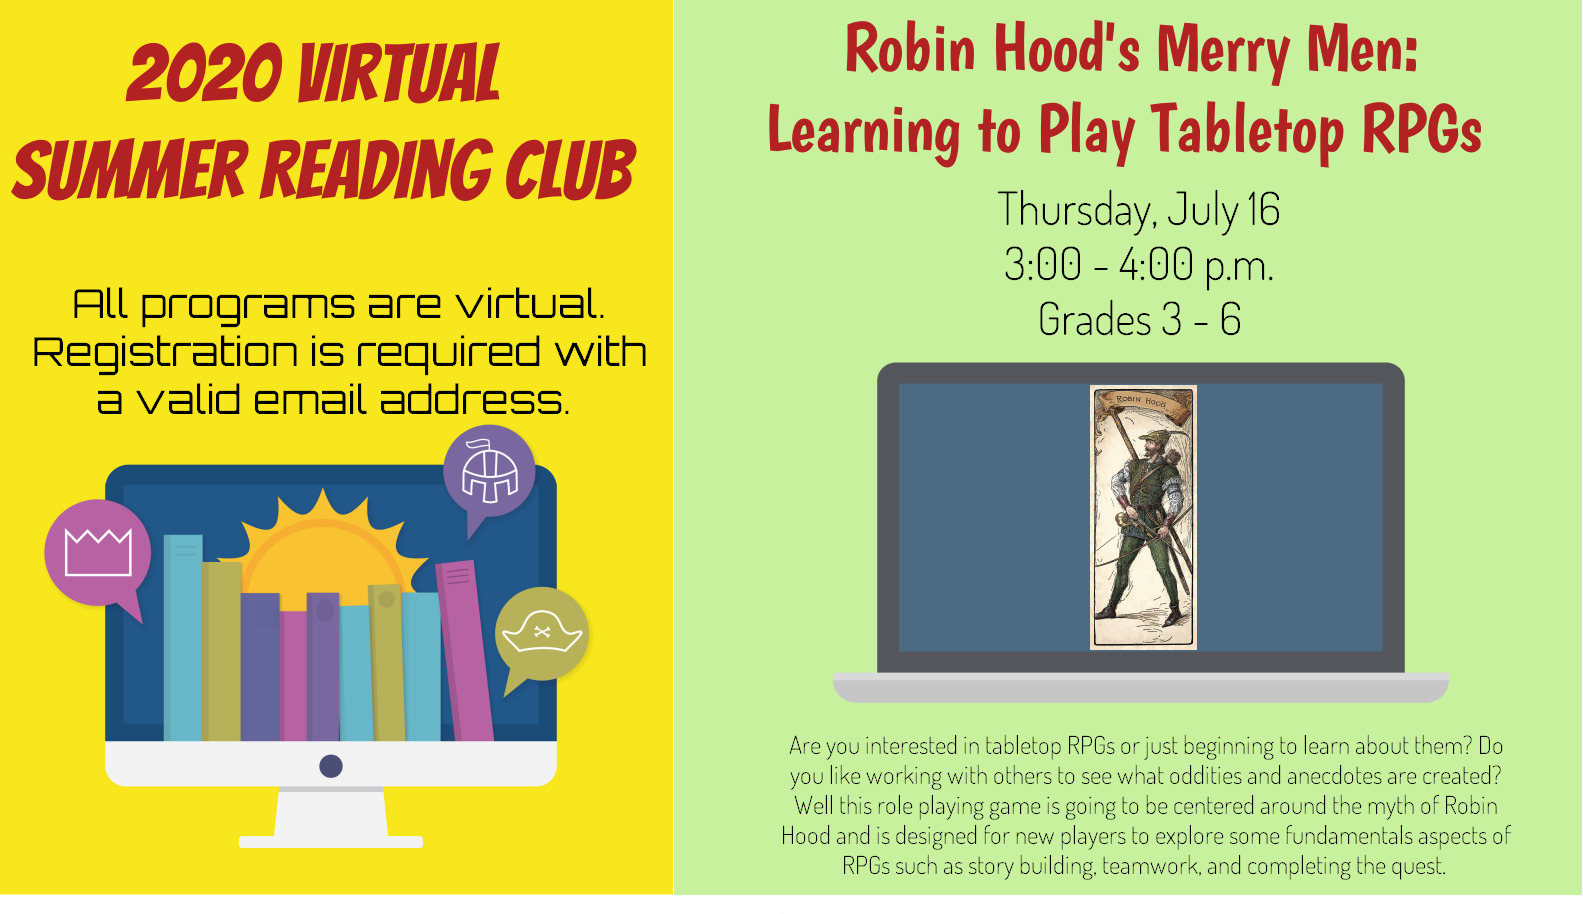 Robin Hood's Merry Men: Learning to play Tabletop RPGs